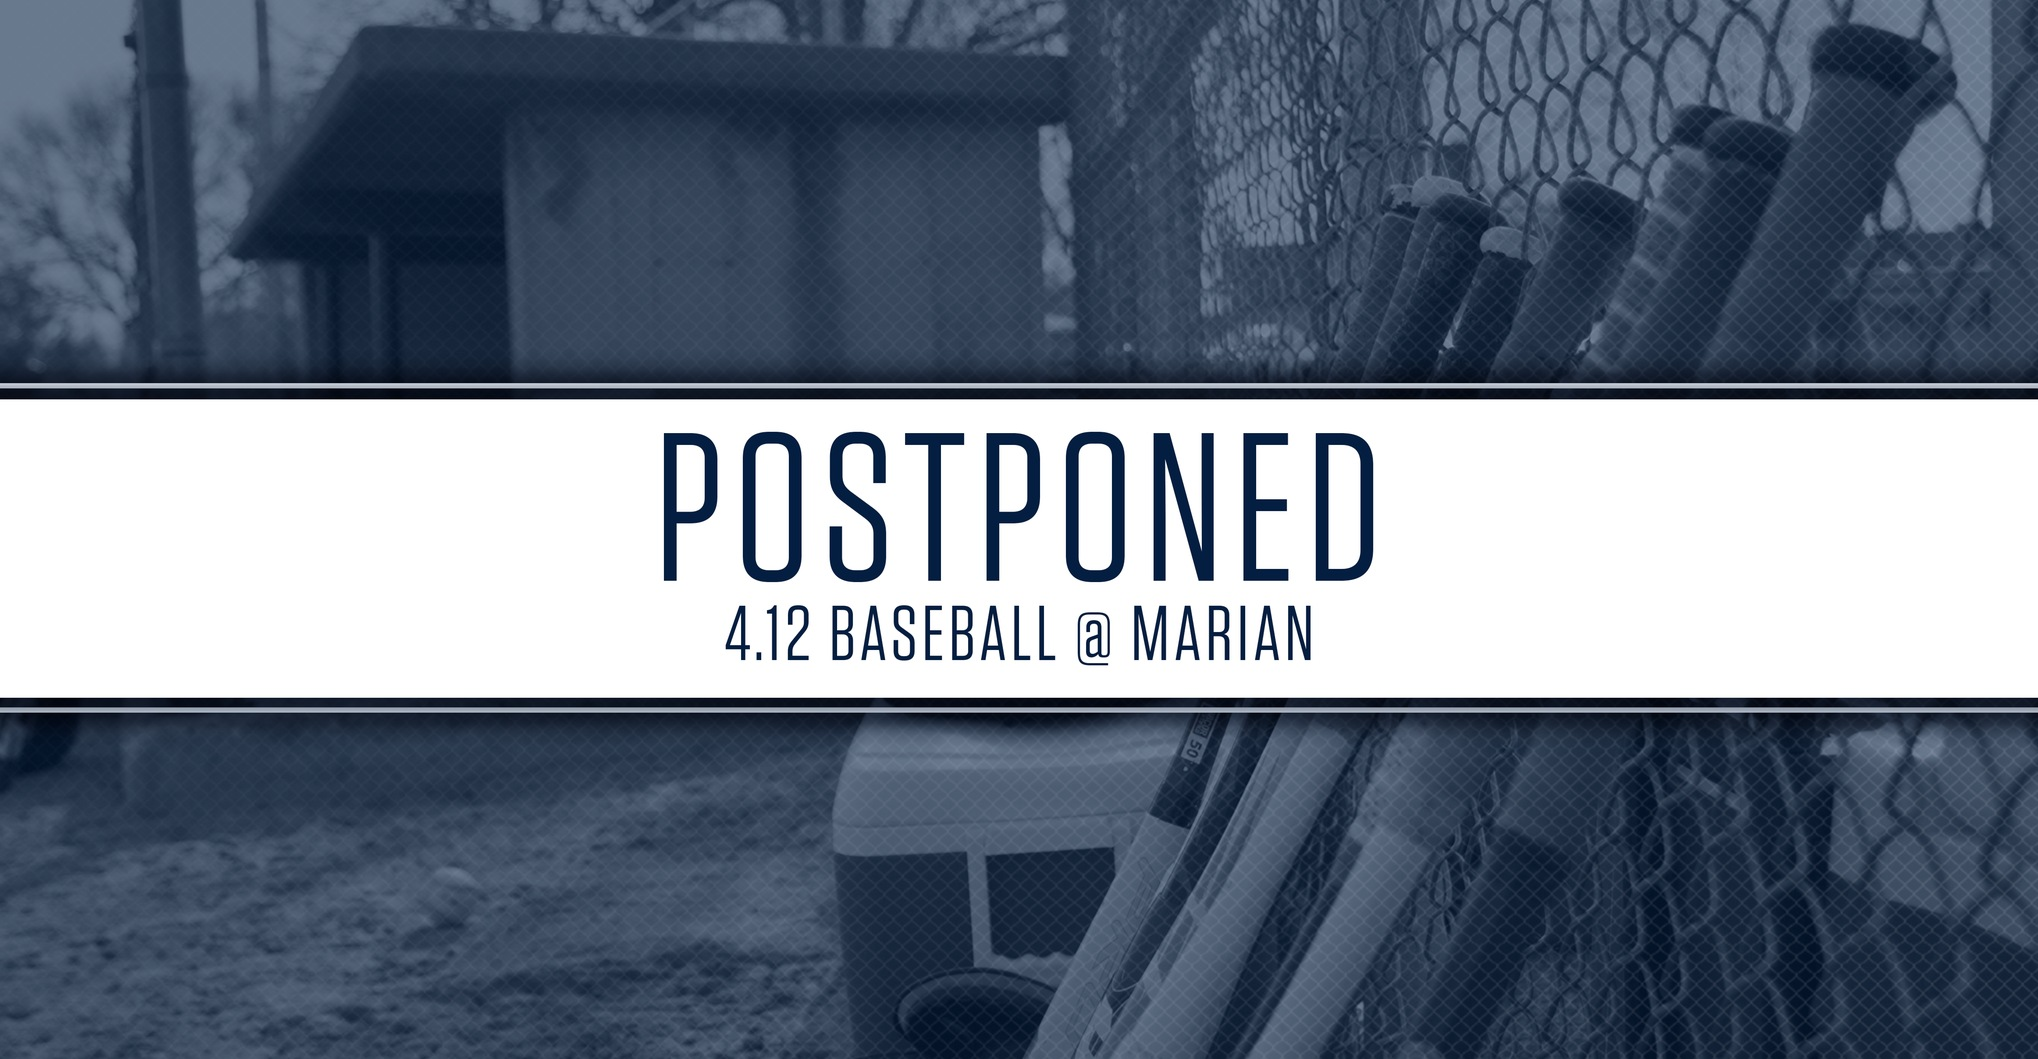 Postponed: April 12 Baseball Game